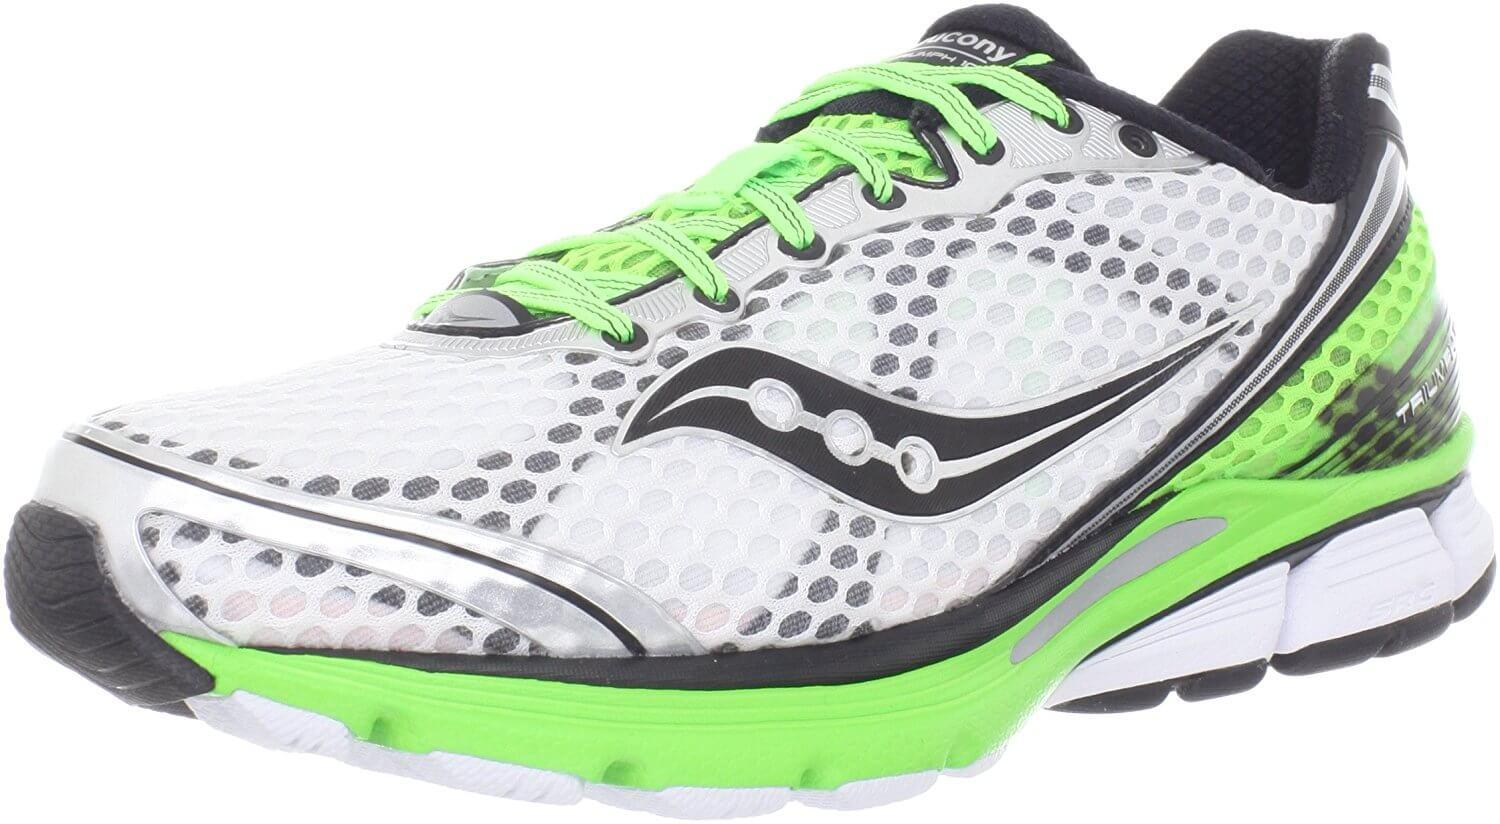 Saucony Triumph 10 superior cushioning for new and heavier runners